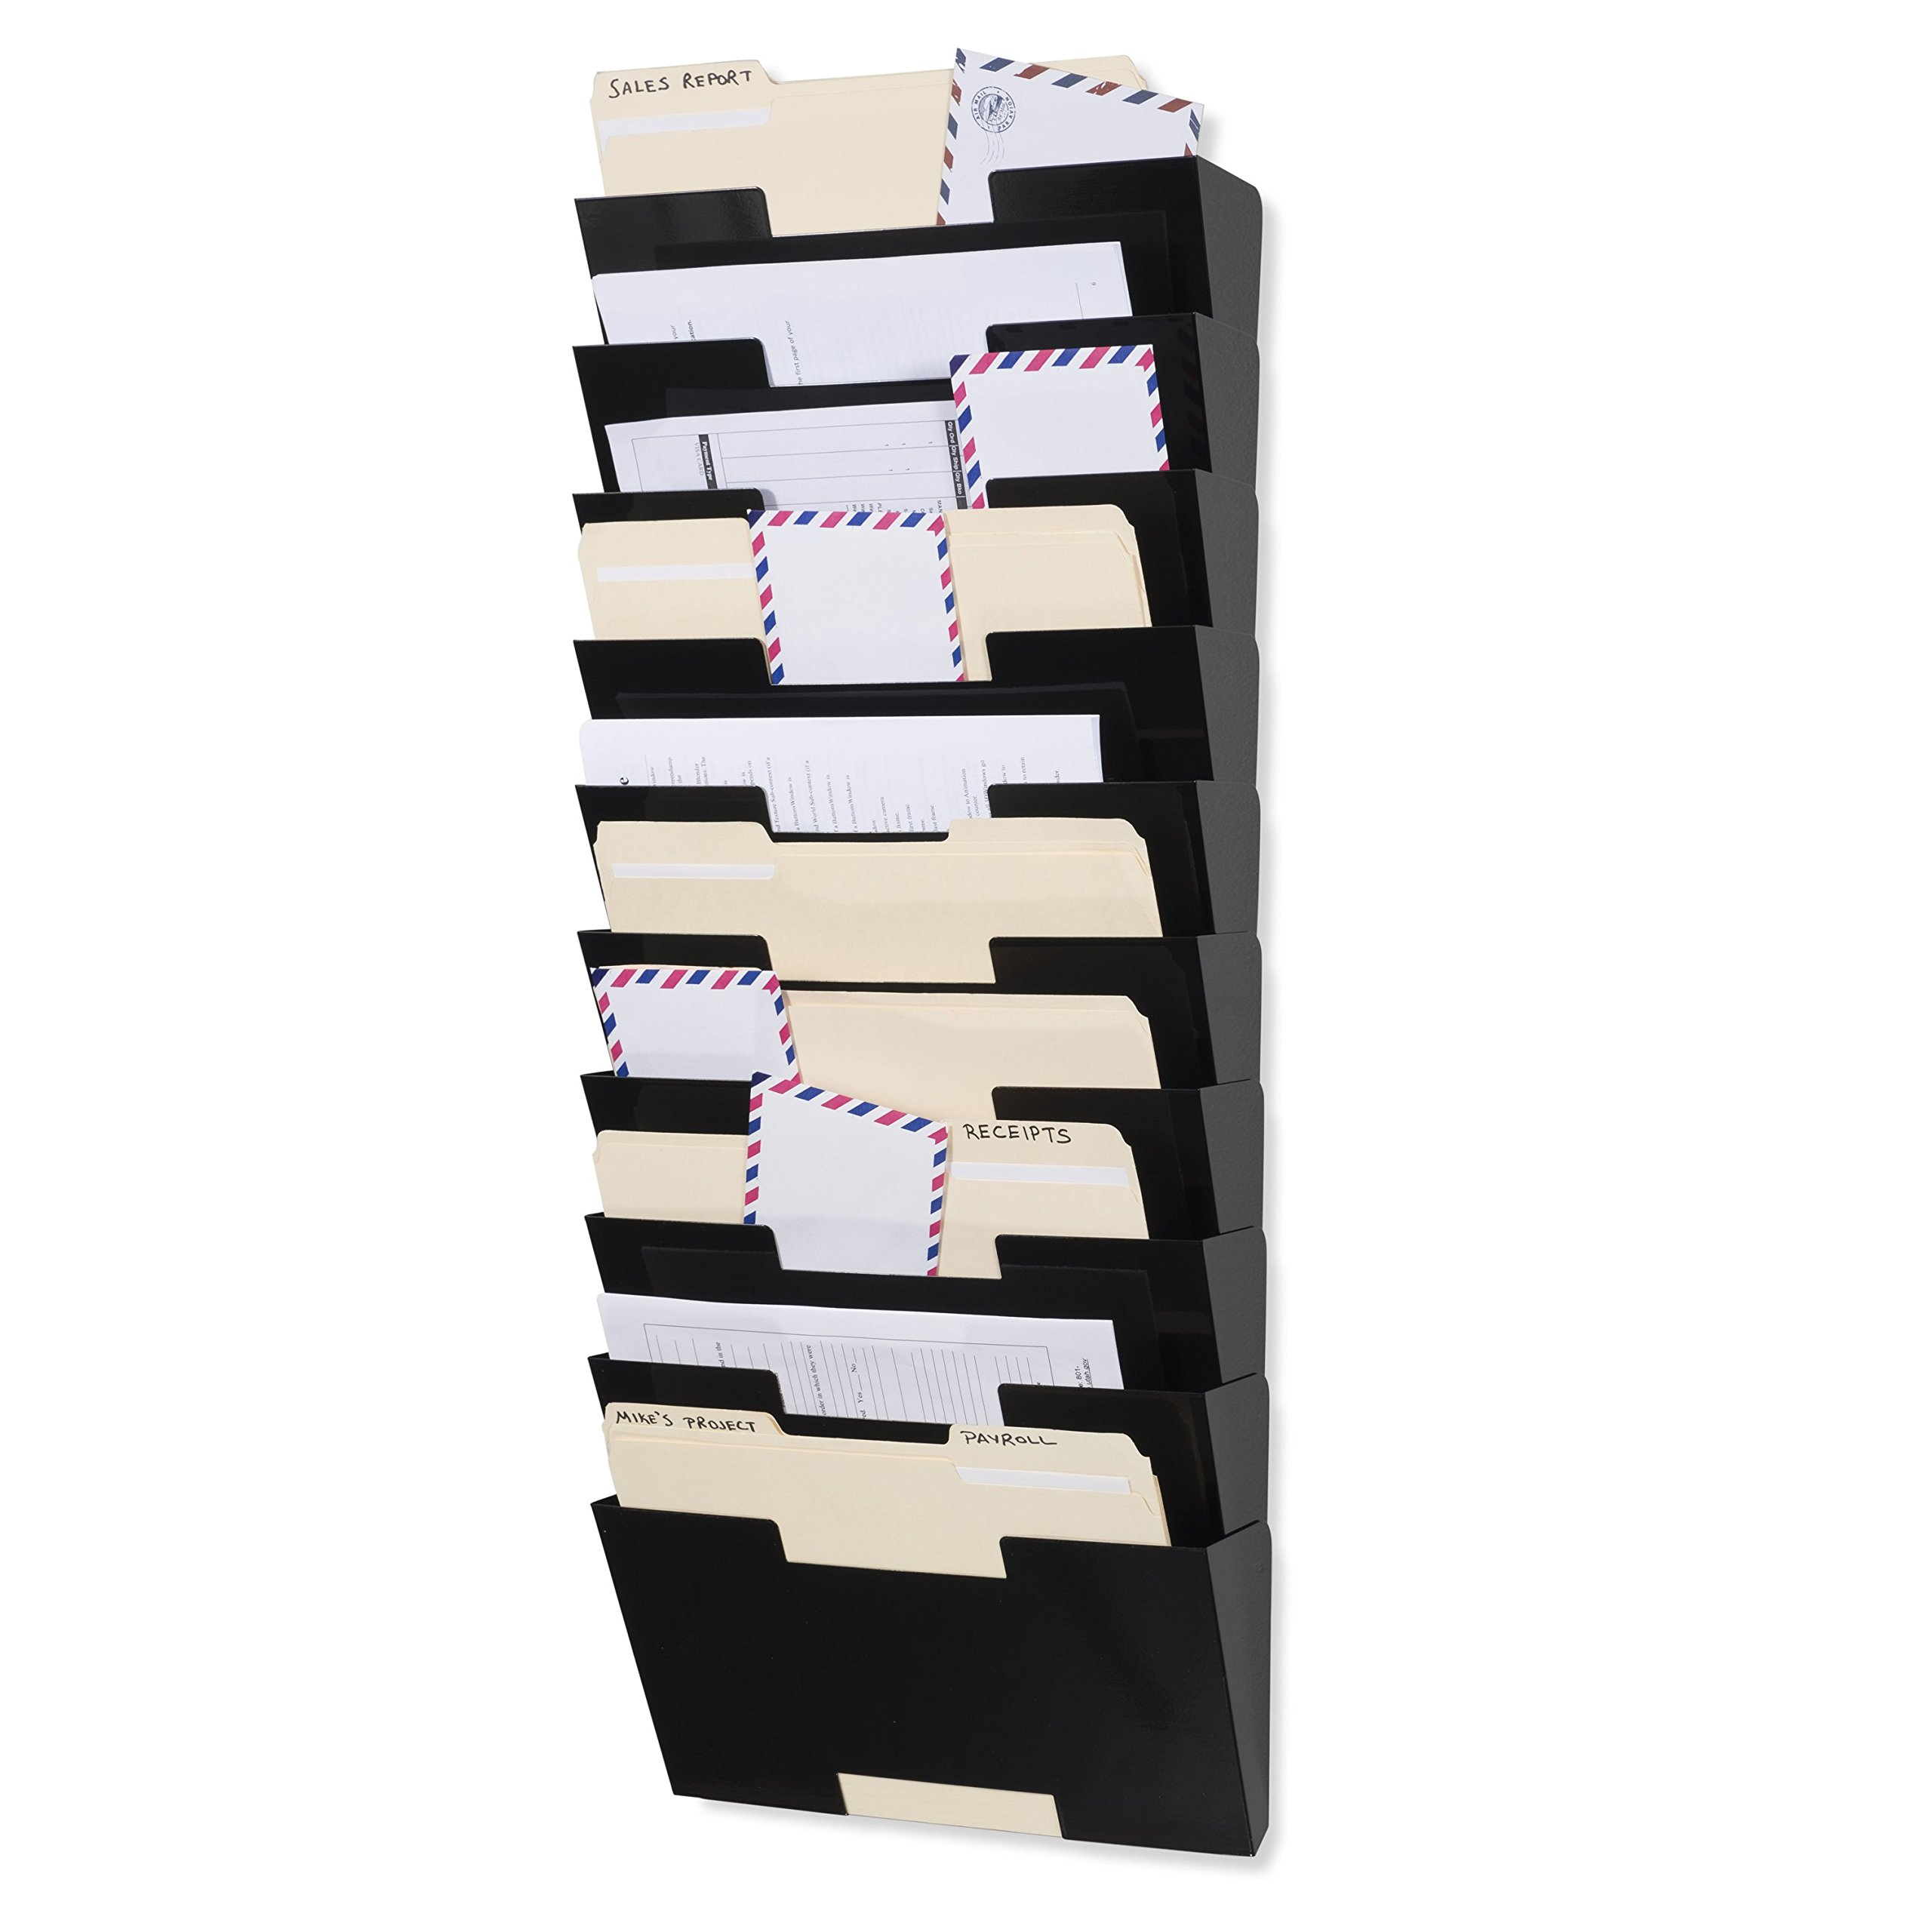 Wallniture Lisbon Black Wall Mounted Steel File Holder - Organizer Rack 10 Sectional Modular Design Letter Size 13 Inch - Multi-purpose Organizer Display Magazines - Sort Files and Folders